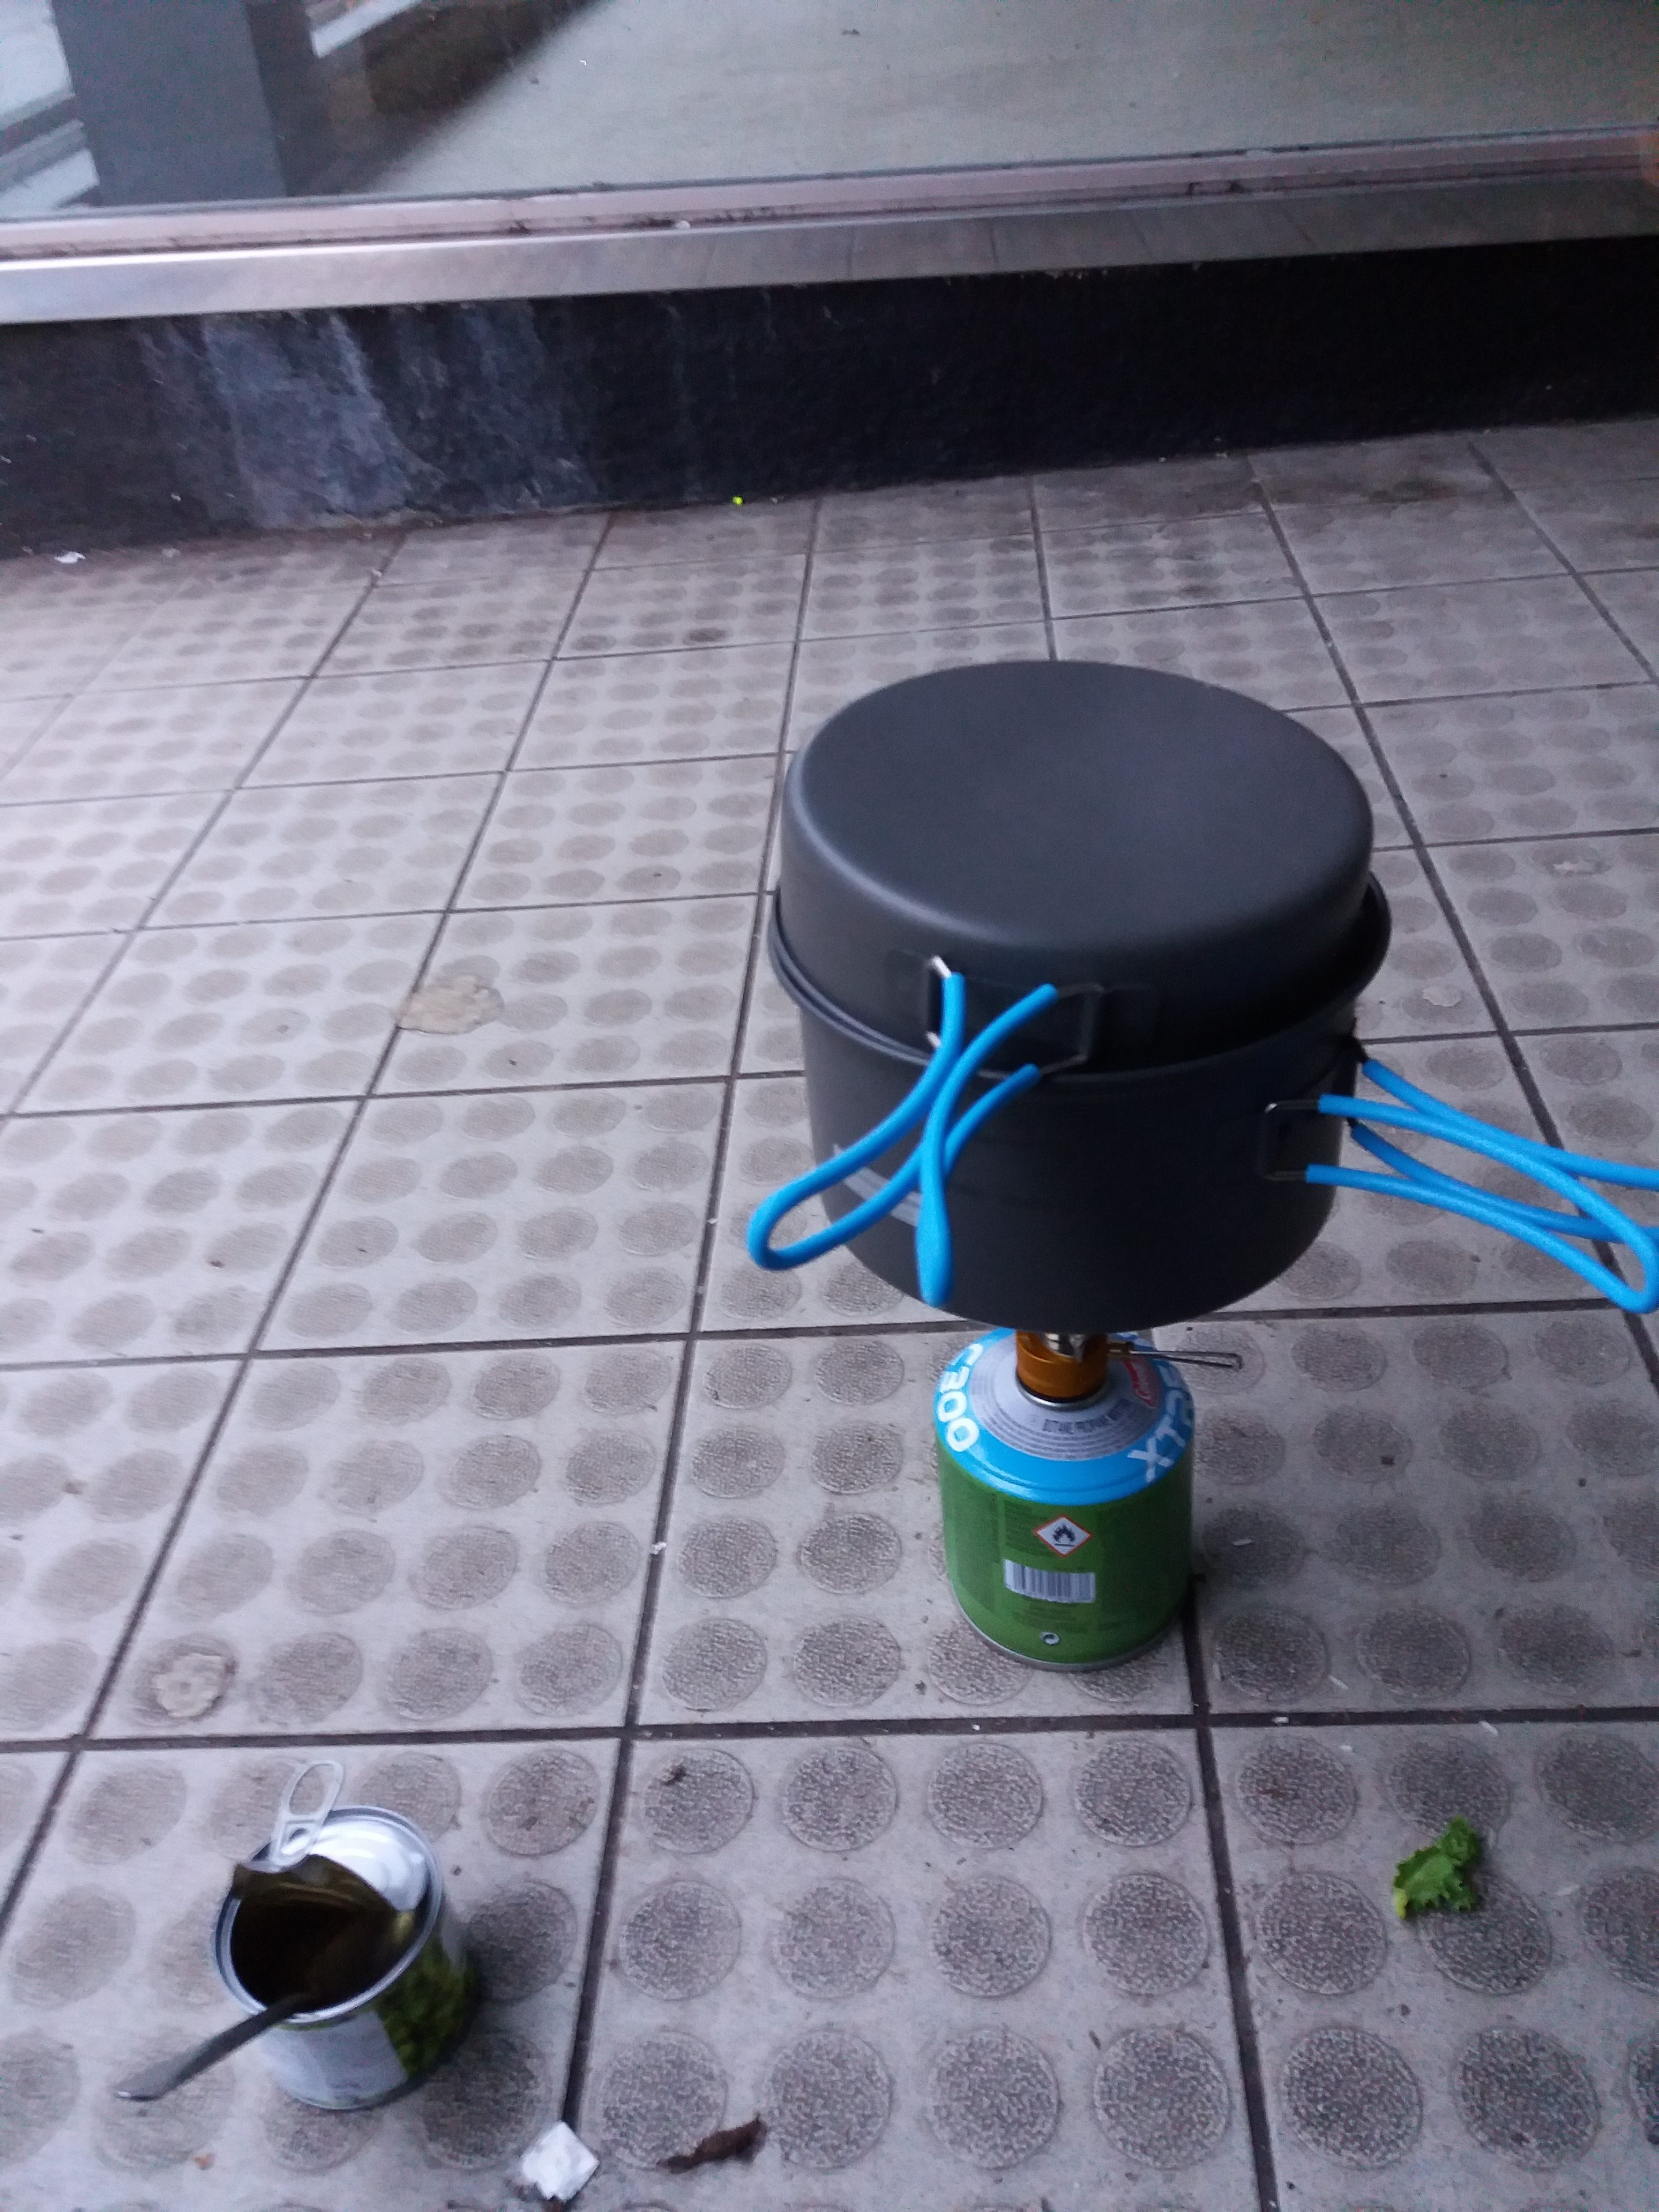 Street Cooking on camping stove